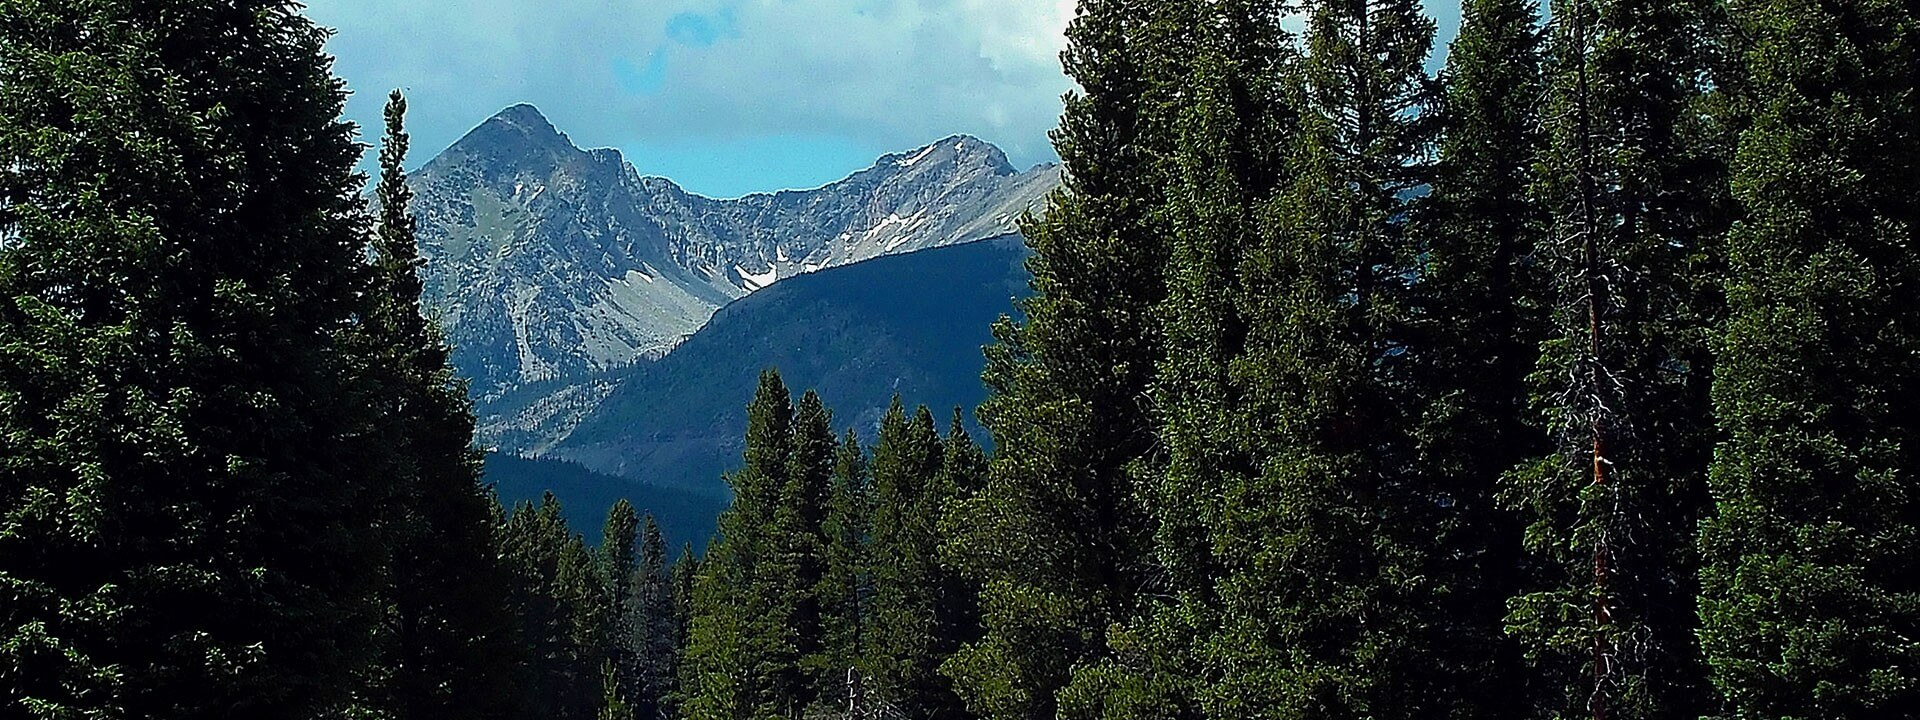 100 reasons to love rmnp